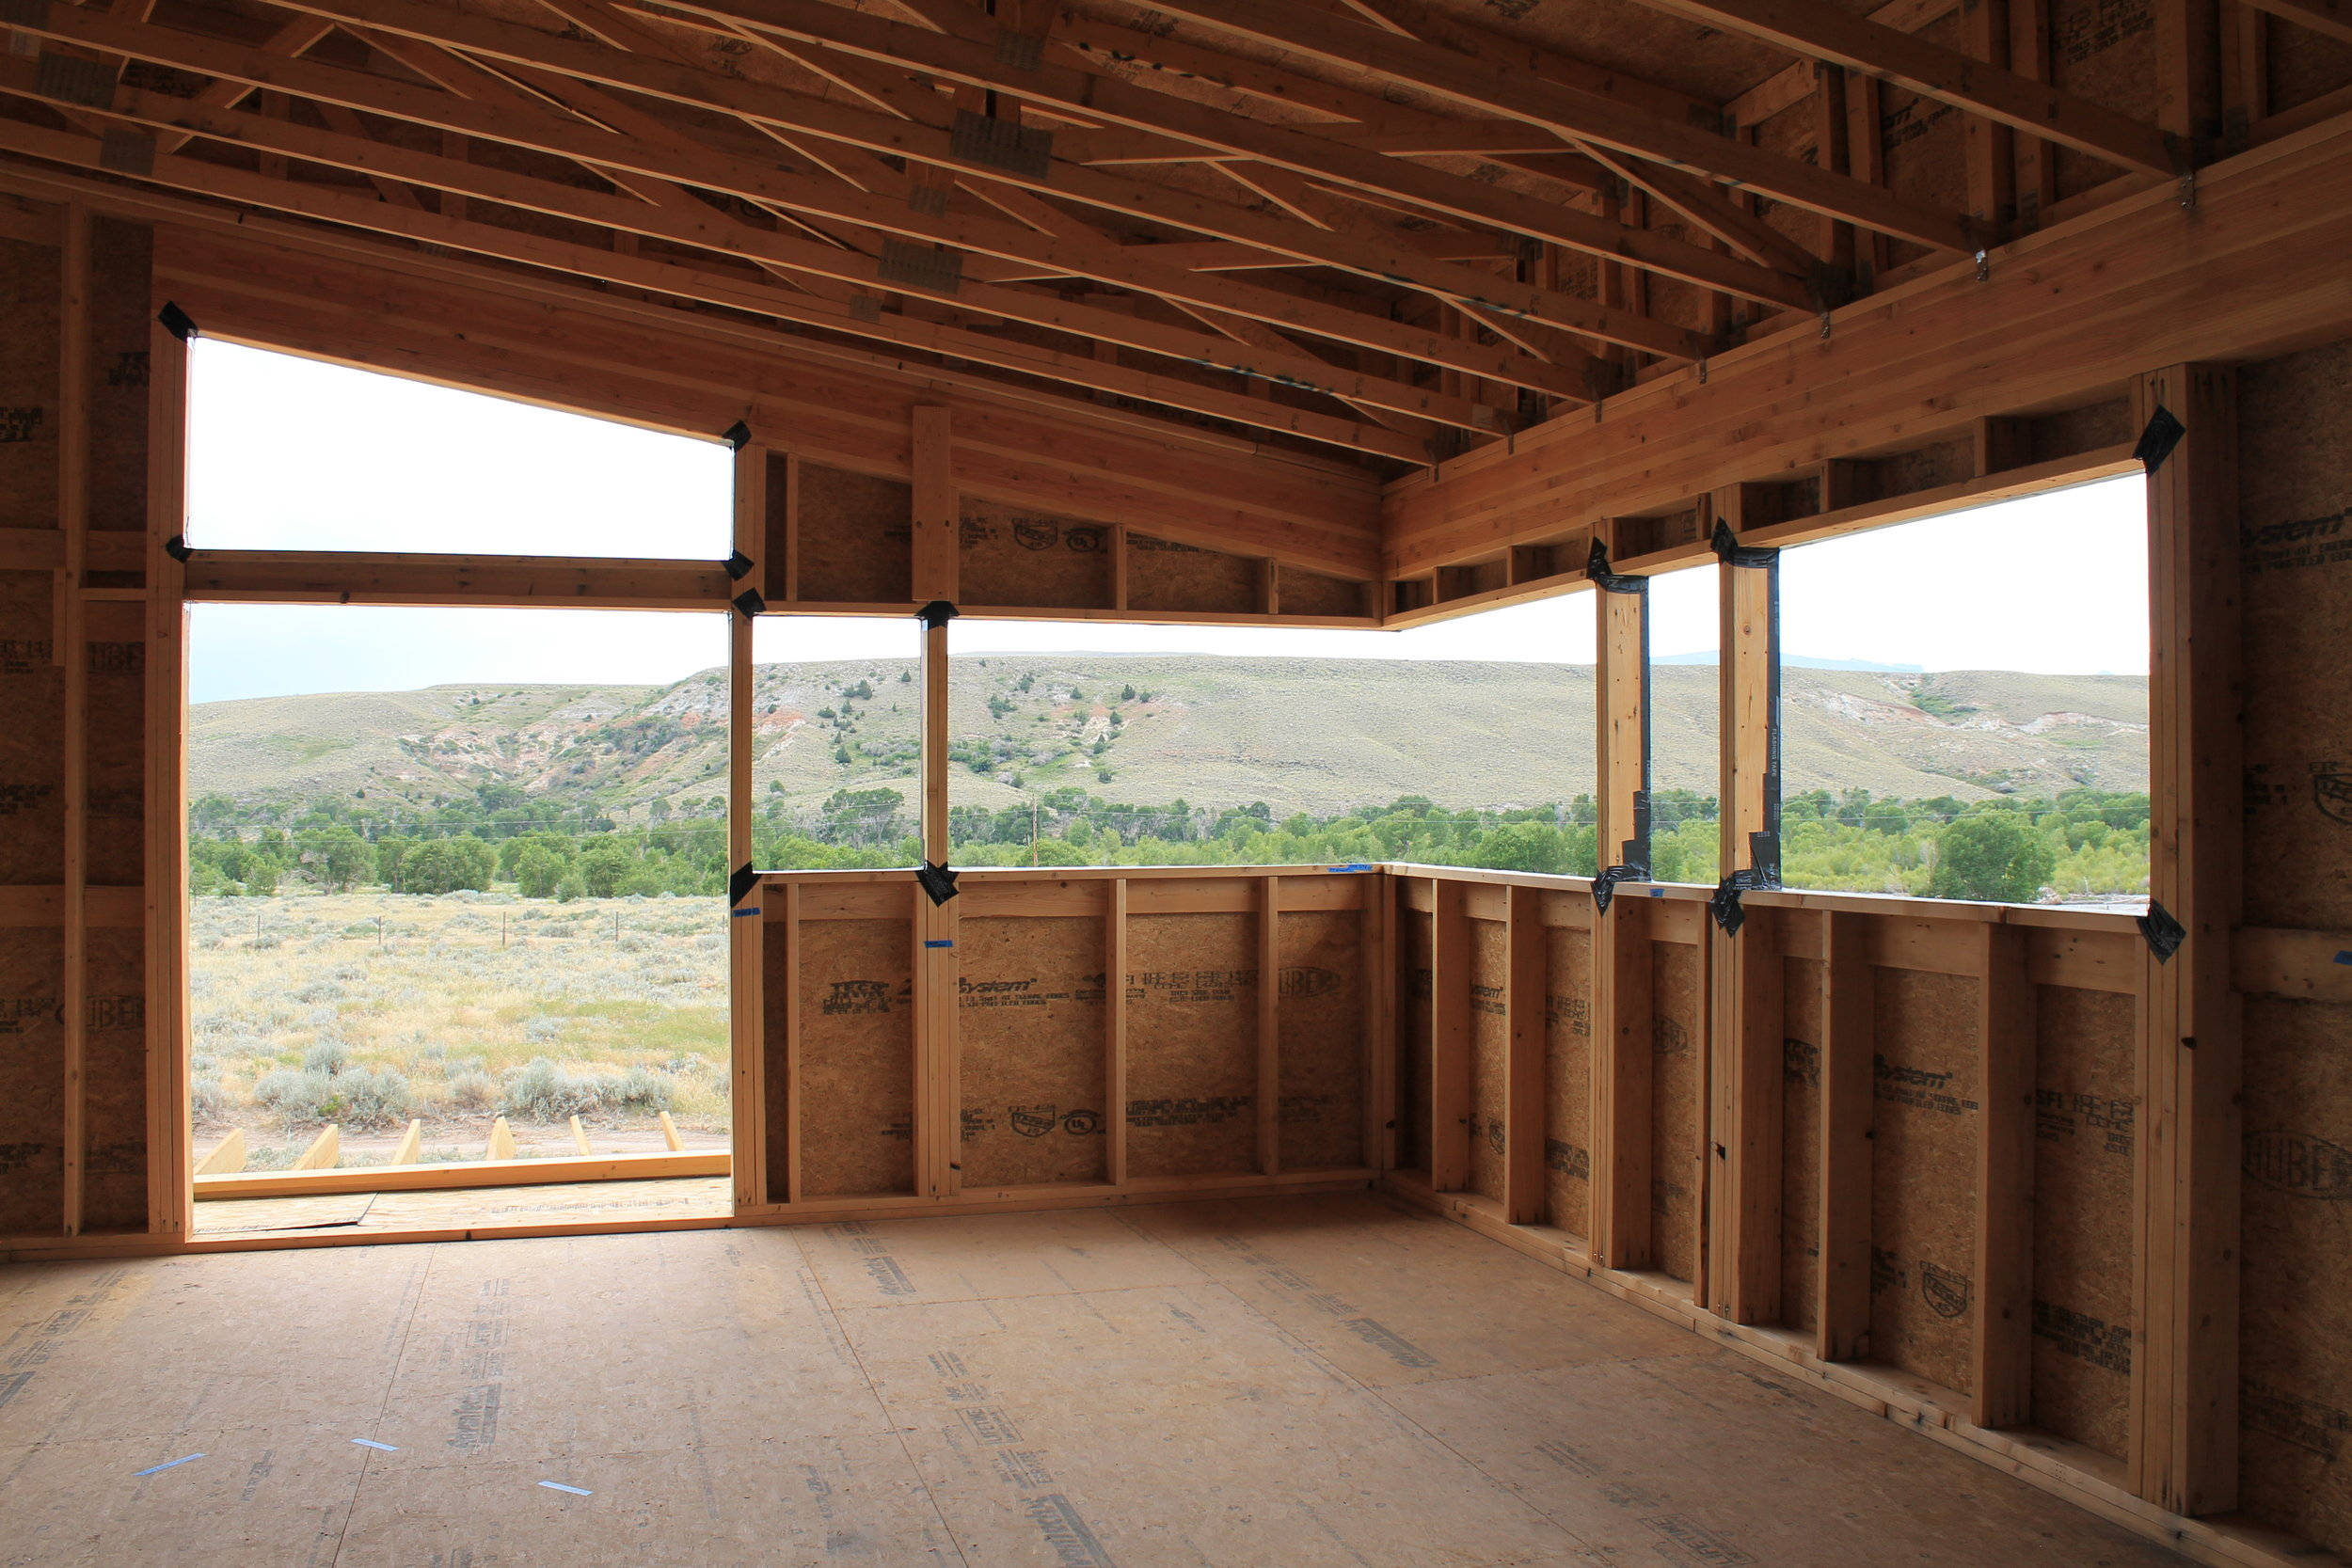 The view onto the Crowheart landscape from the kitchen at the build site.